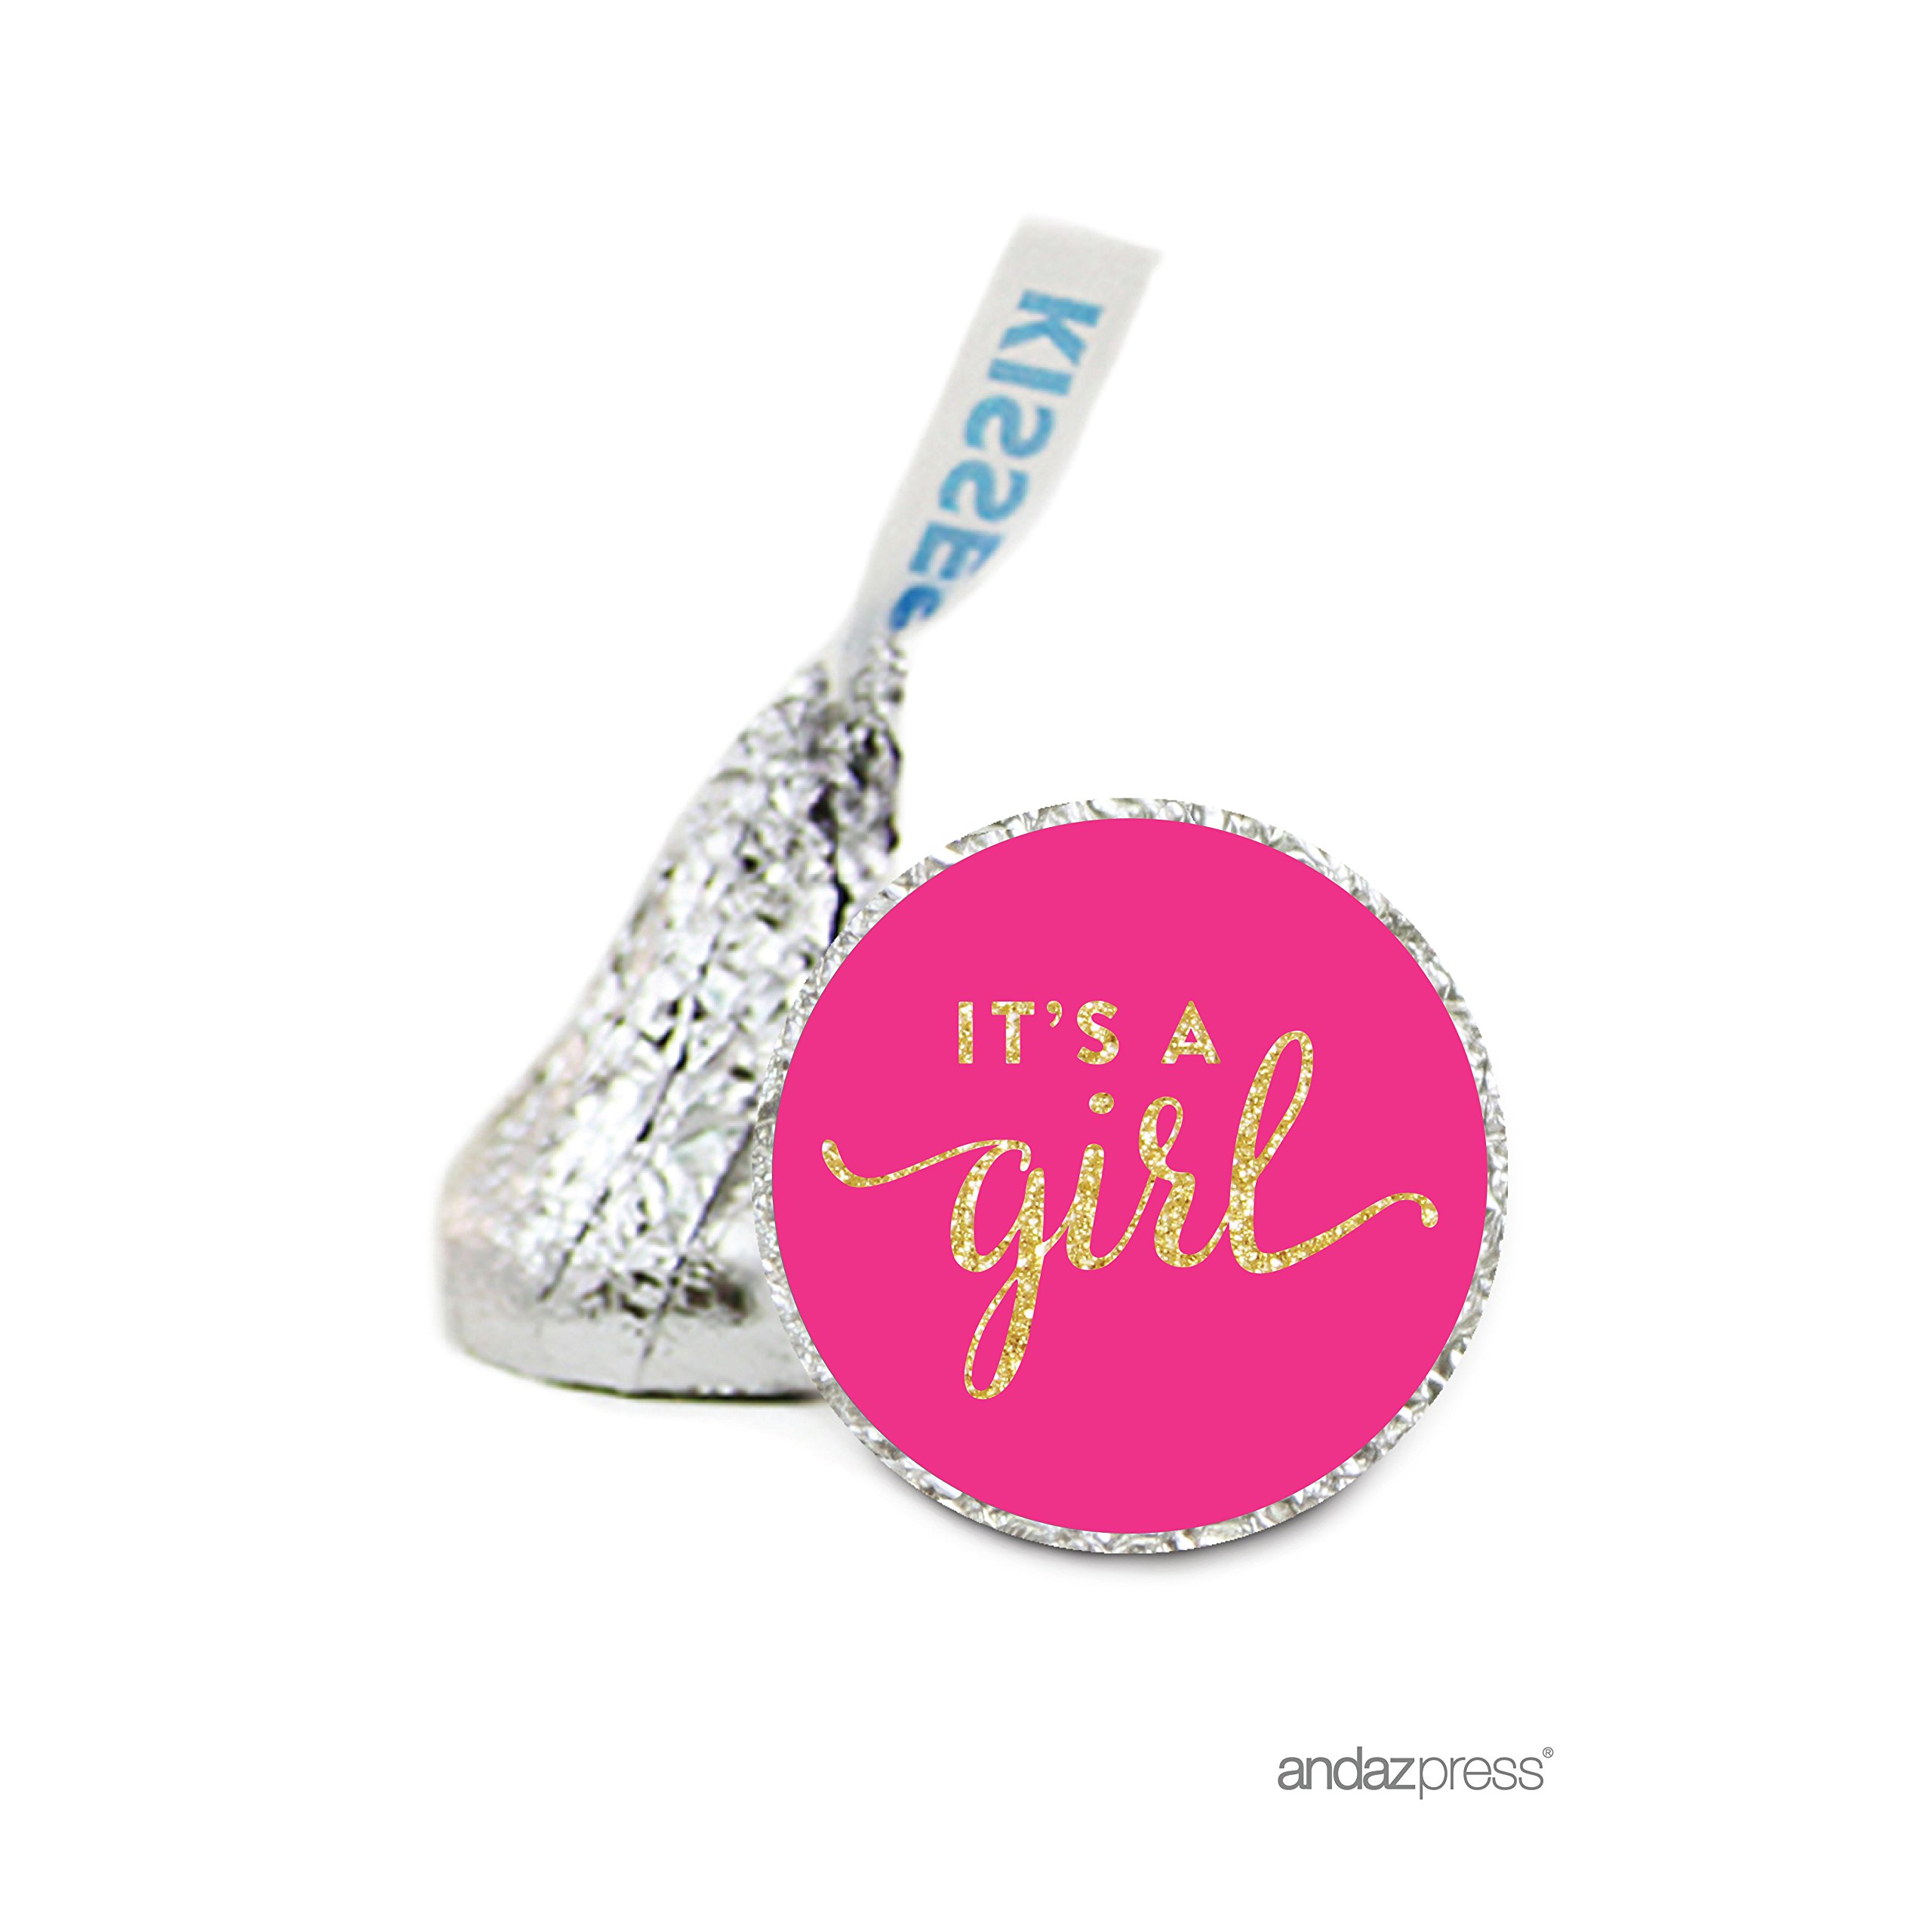 Andaz Press Chocolate Drop Labels Stickers Single, Baby Shower, It's a Girl Fuchsia Pink and Gold Glitter, 216-Pack, For Hershey's Kisses Party Favors, Gifts, Decorations